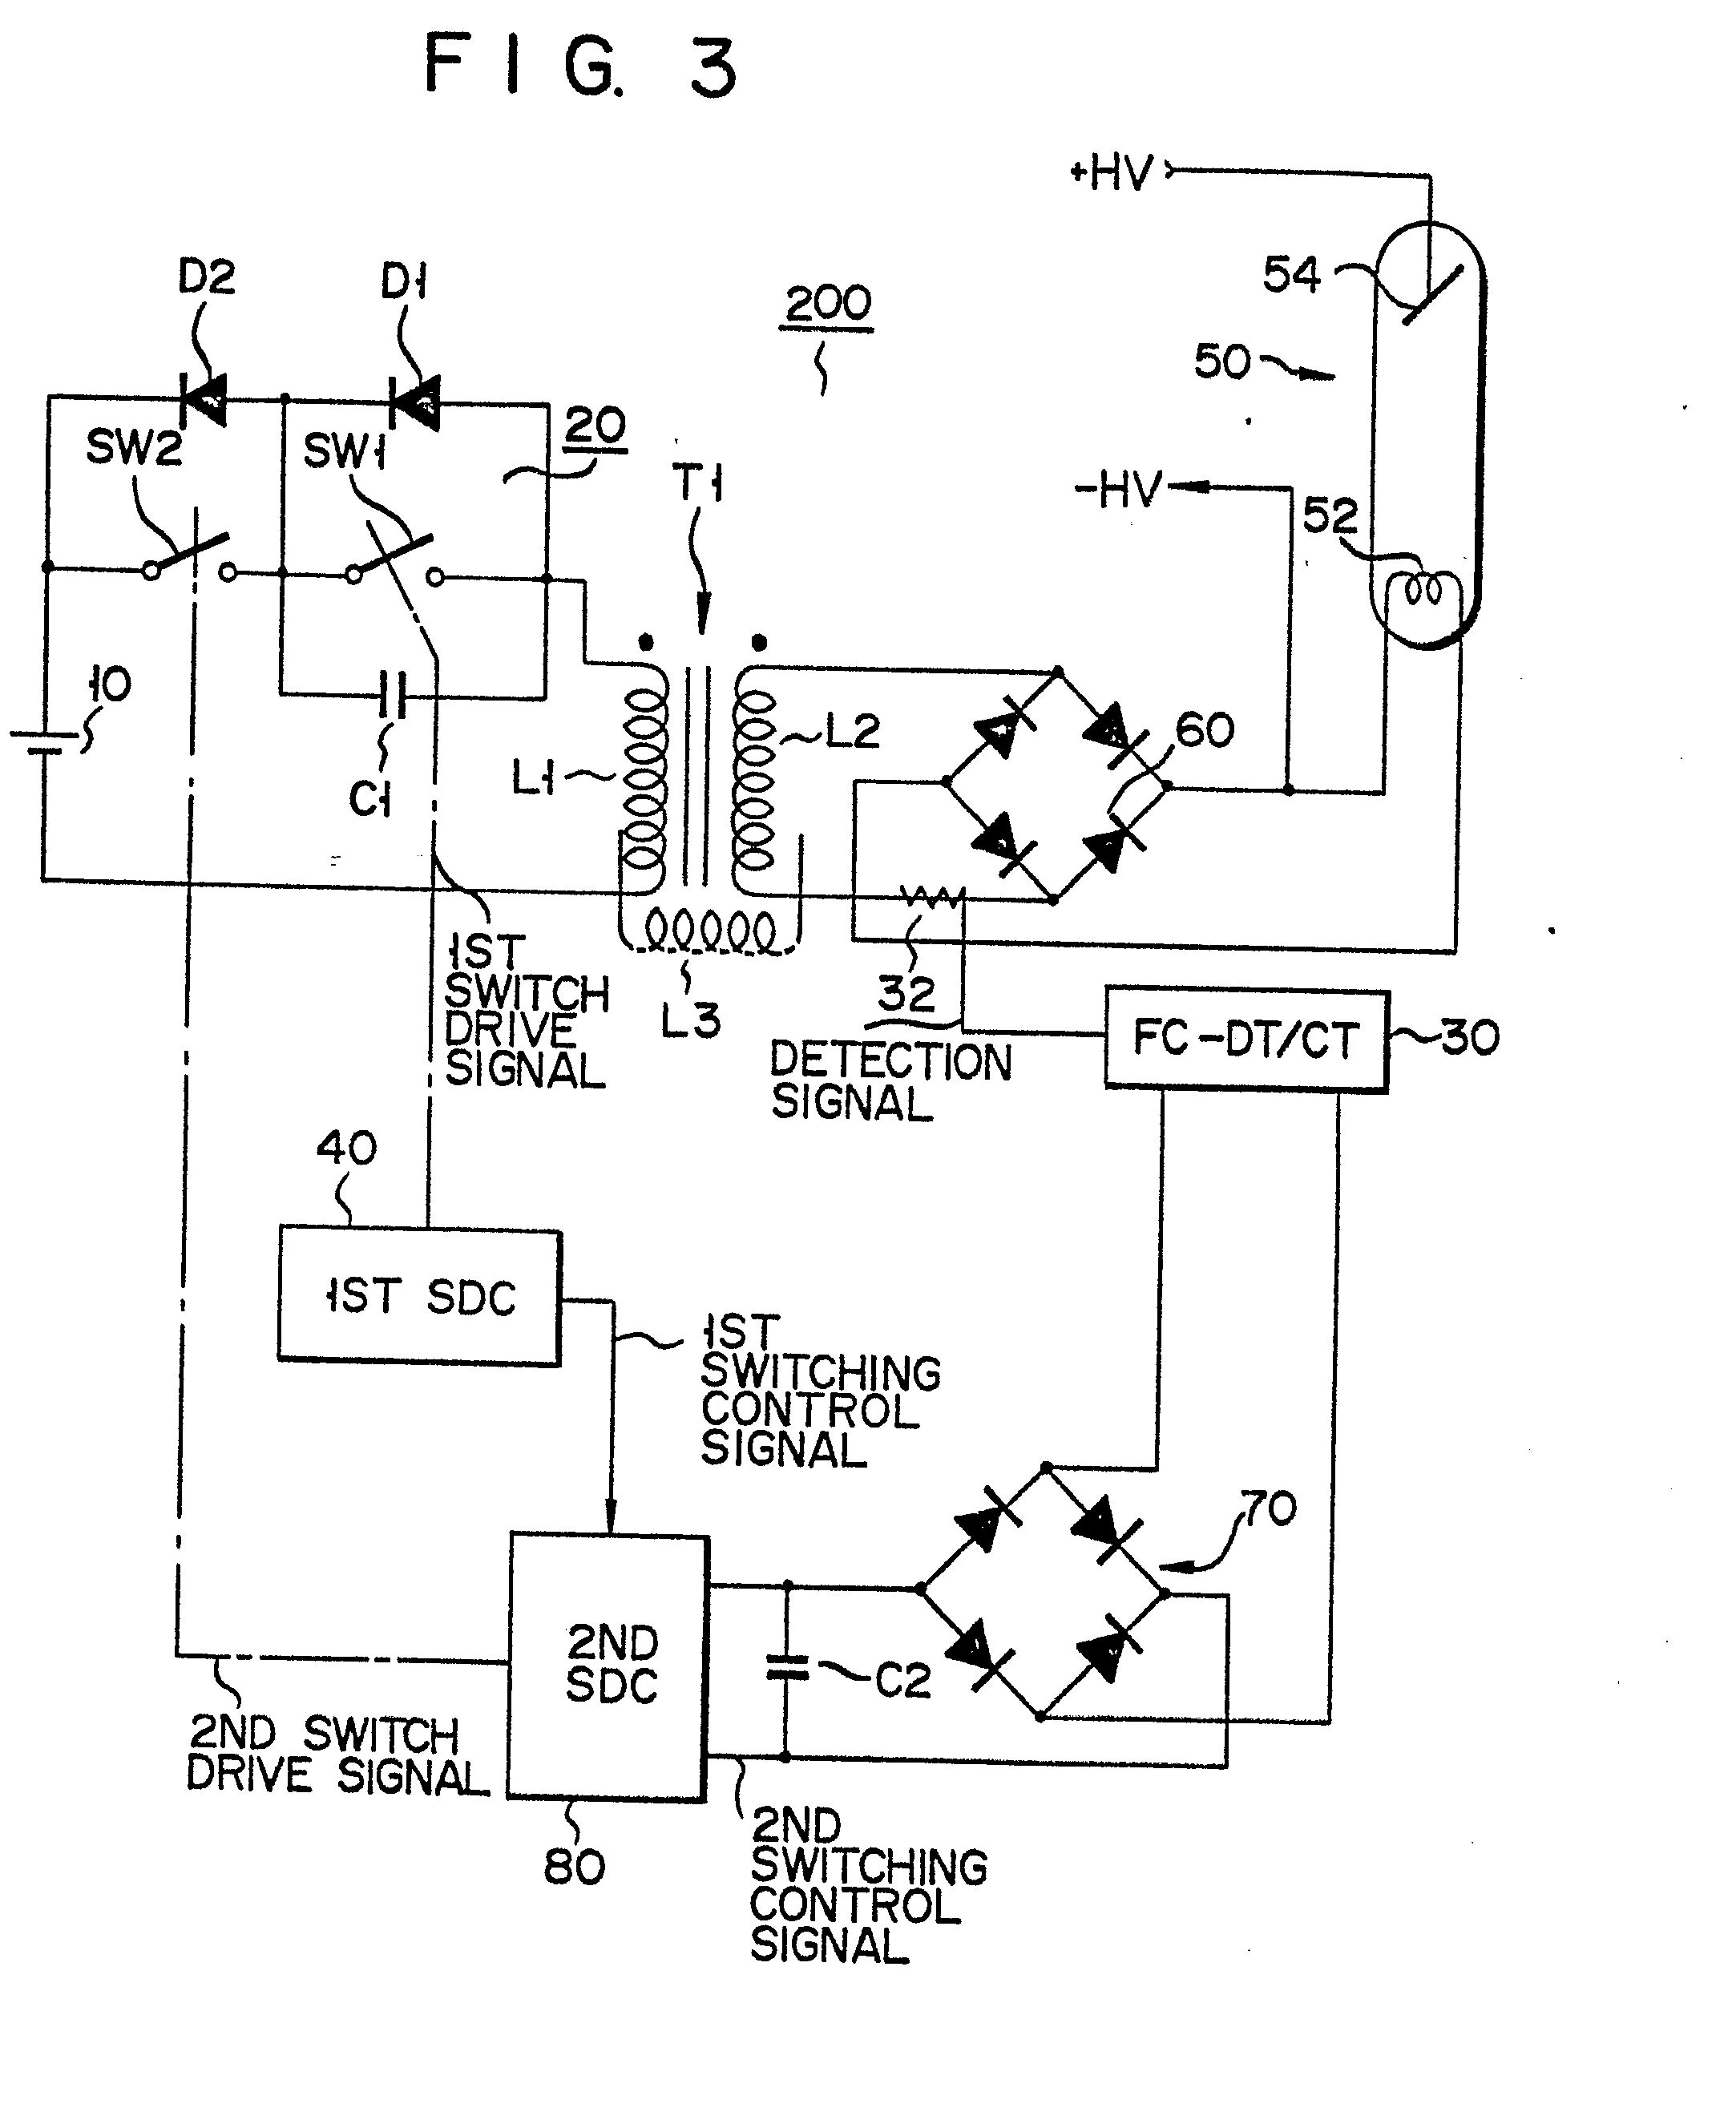 X Ray Circuit Diagram Labeled Unique Patent Ep A2 Heating Circuit for A Filament An X